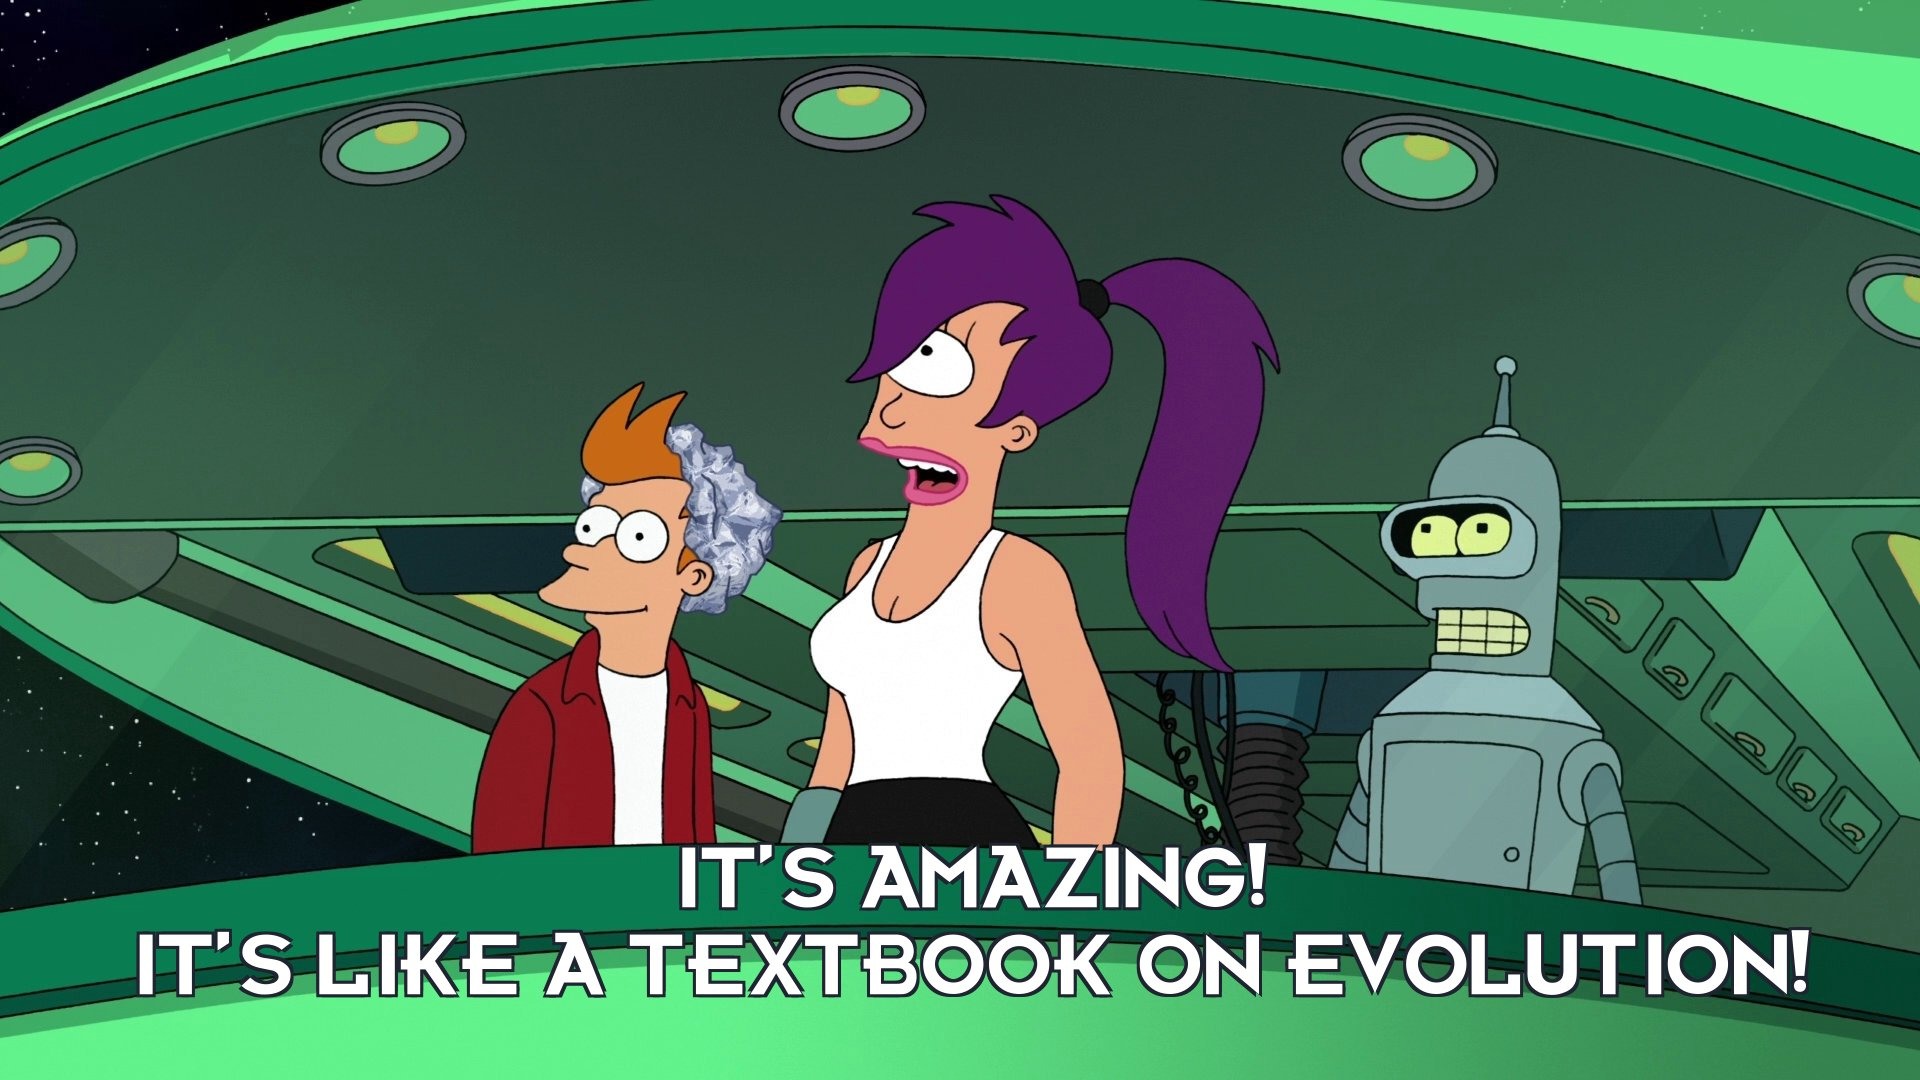 Turanga Leela: It's amazing! It's like a textbook on evolution!